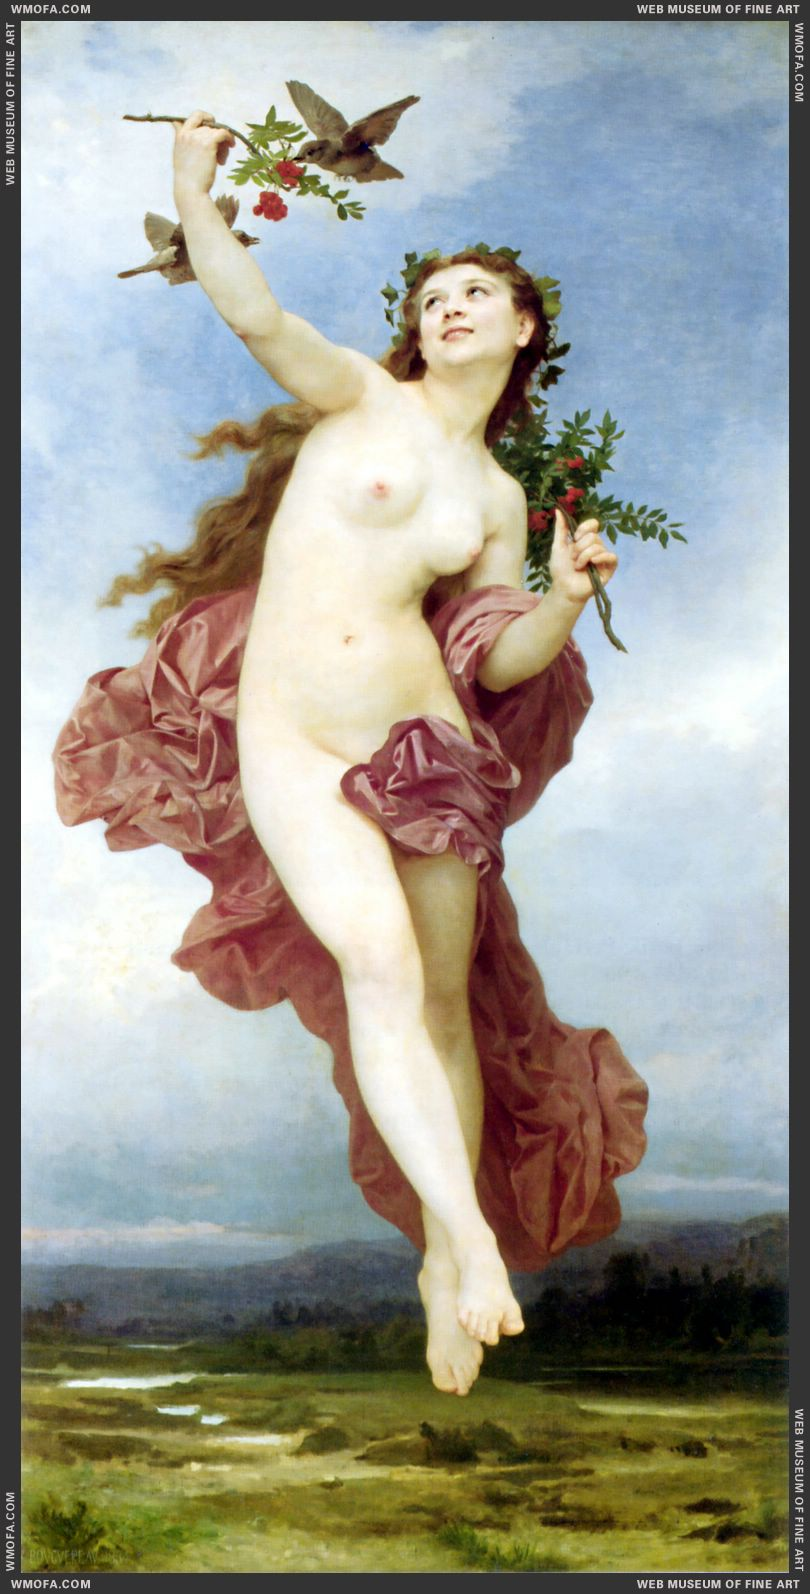 Le Jour - Day 1884 by Bouguereau, William